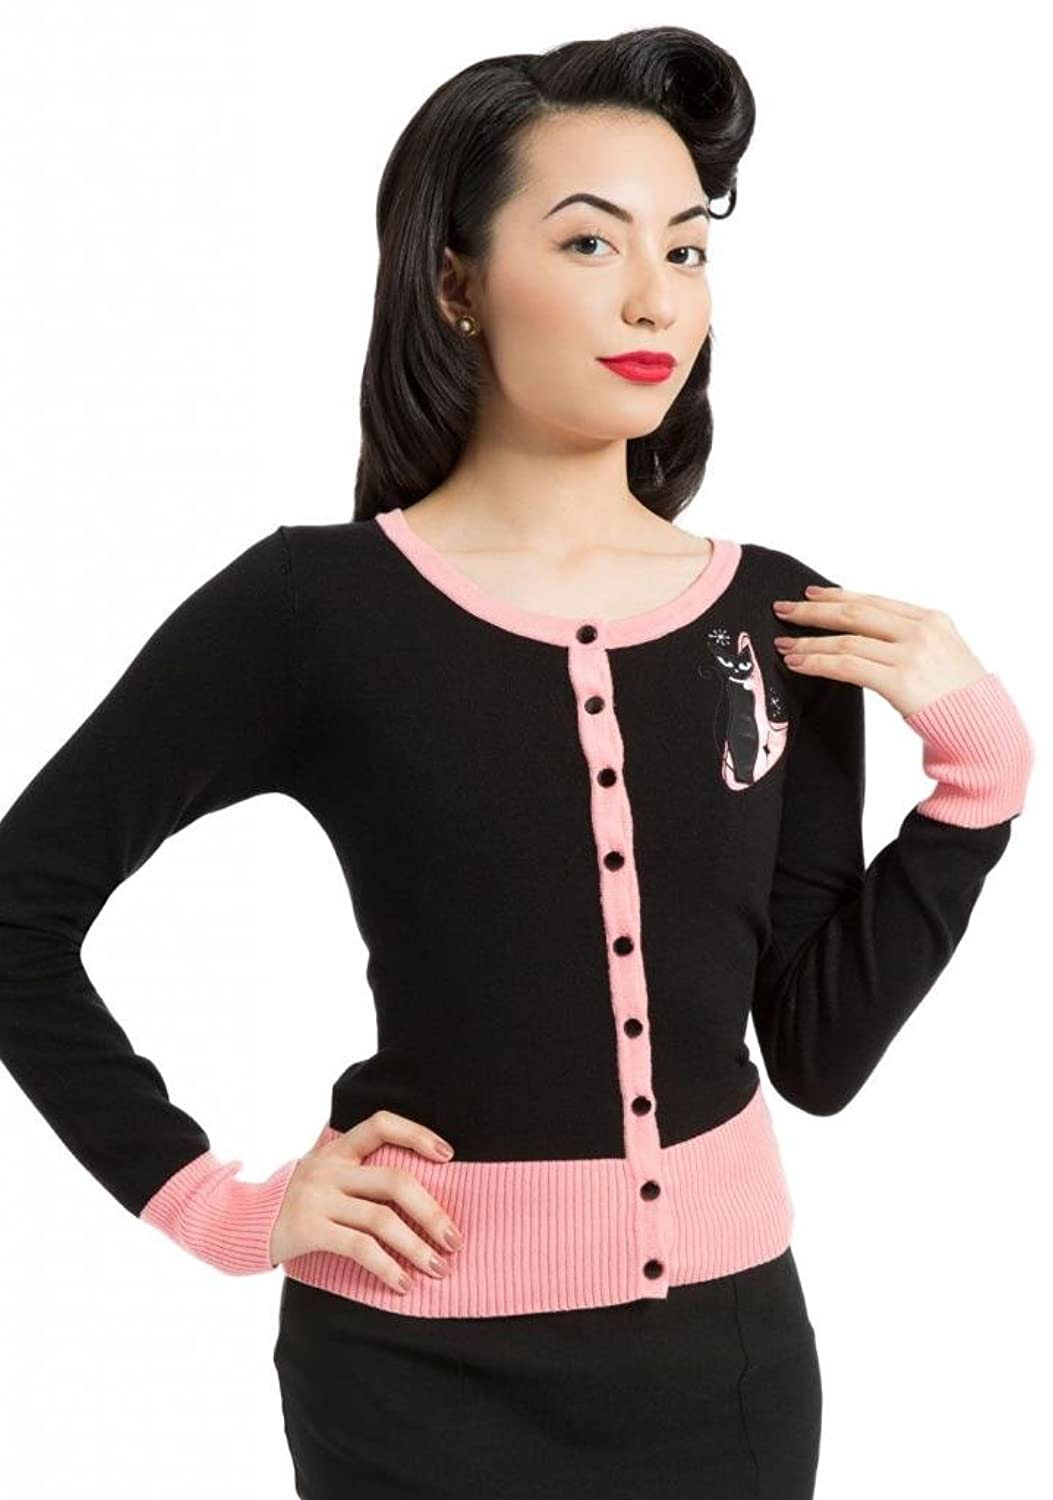 1950s Style Sweaters, Crop Cardigans, Twin Sets Retro Kitty Cardigan Black                                AT vintagedancer.com